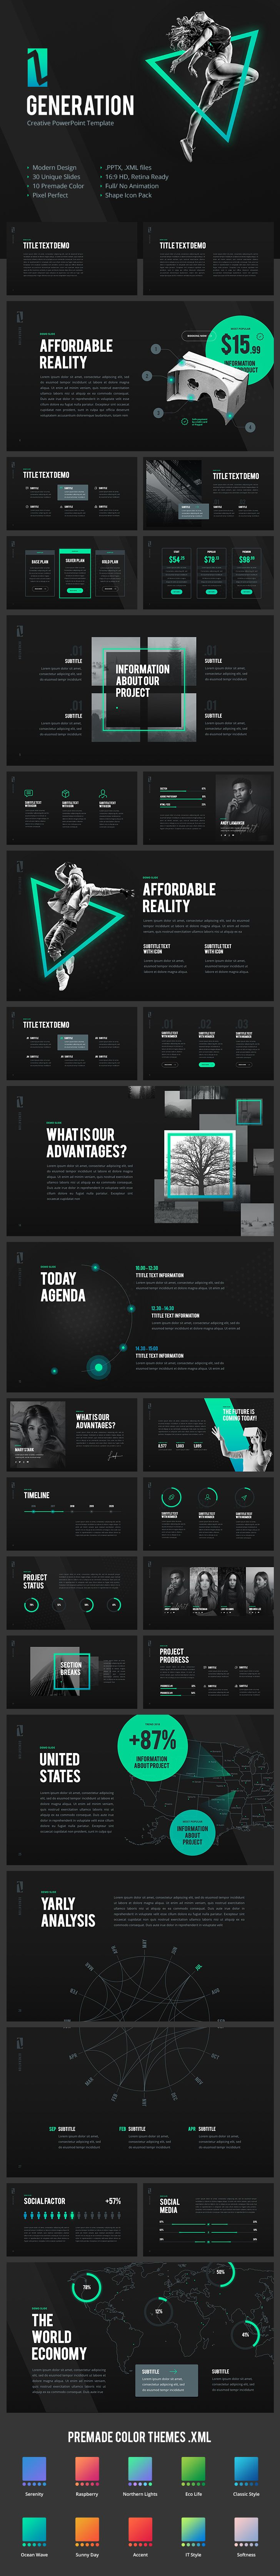 50 best powerpoint template images on pinterest aspect ratio generation z creative powerpoint template 30 unique slides 10 pre made color pptx full no animation hd aspect ratio creative and modern template toneelgroepblik Images